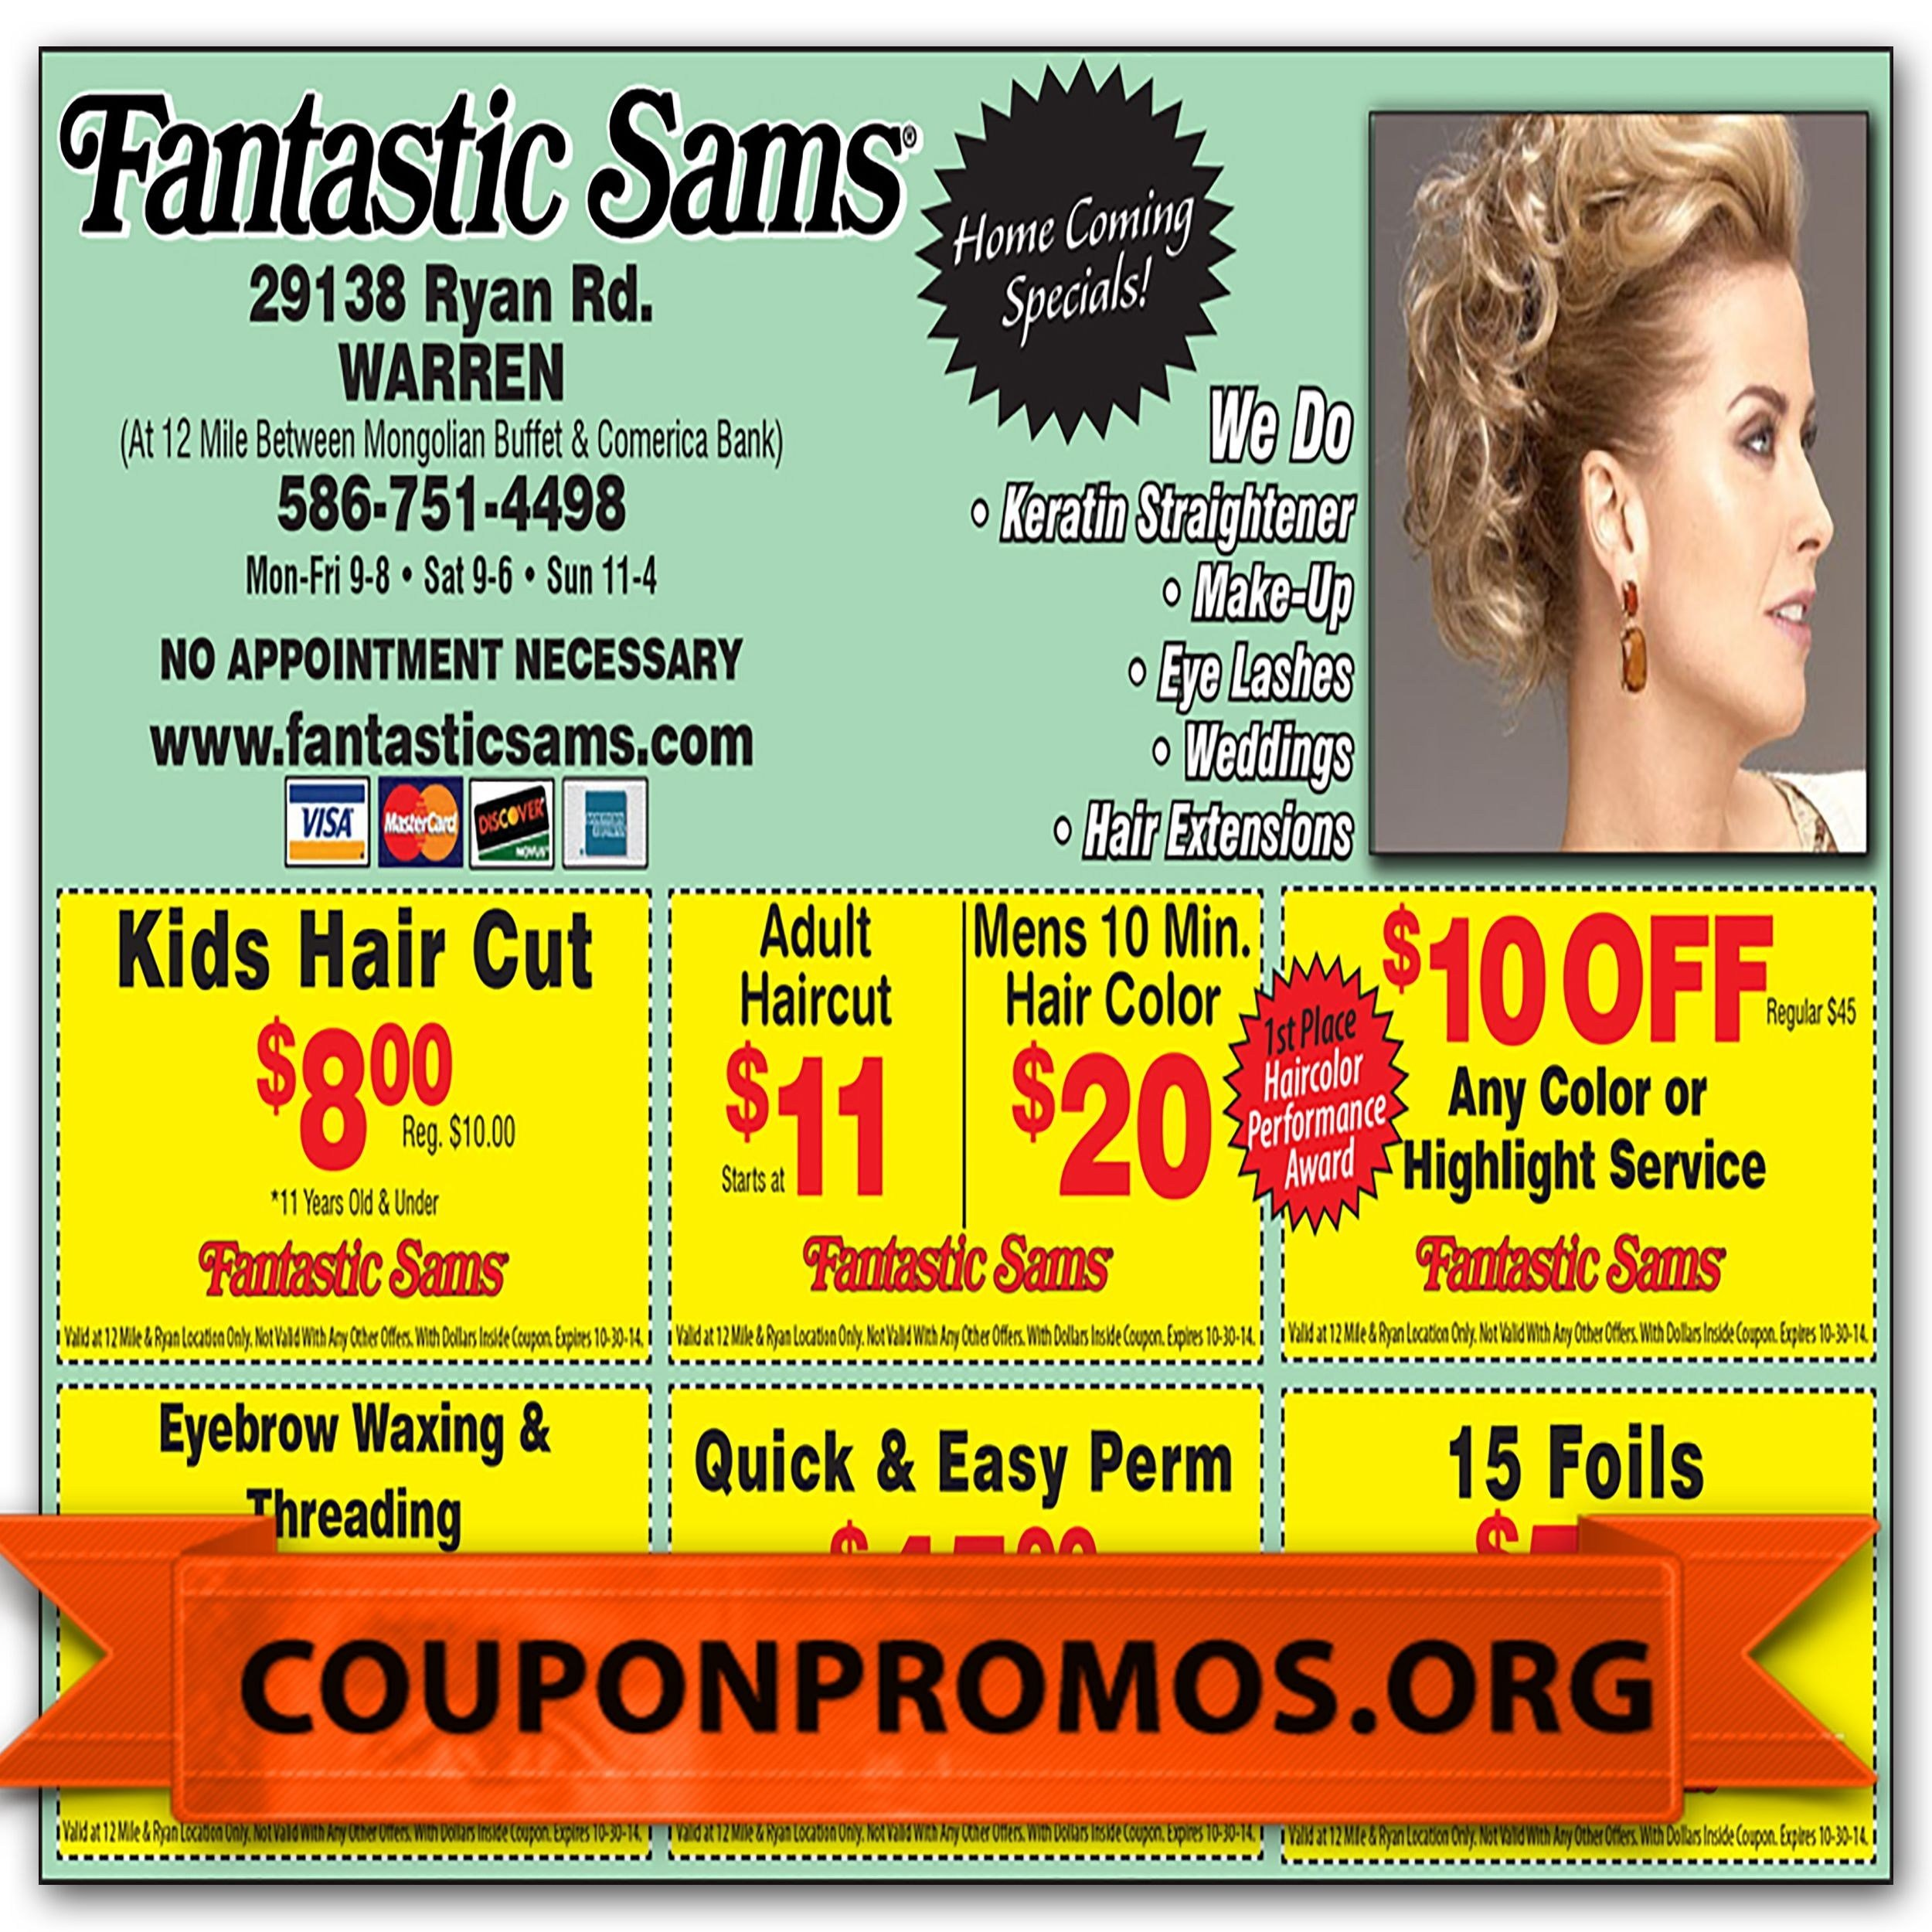 New Fantastic Sams Printable Coupons 2016 Best Printable Ideas Ideas With Pictures